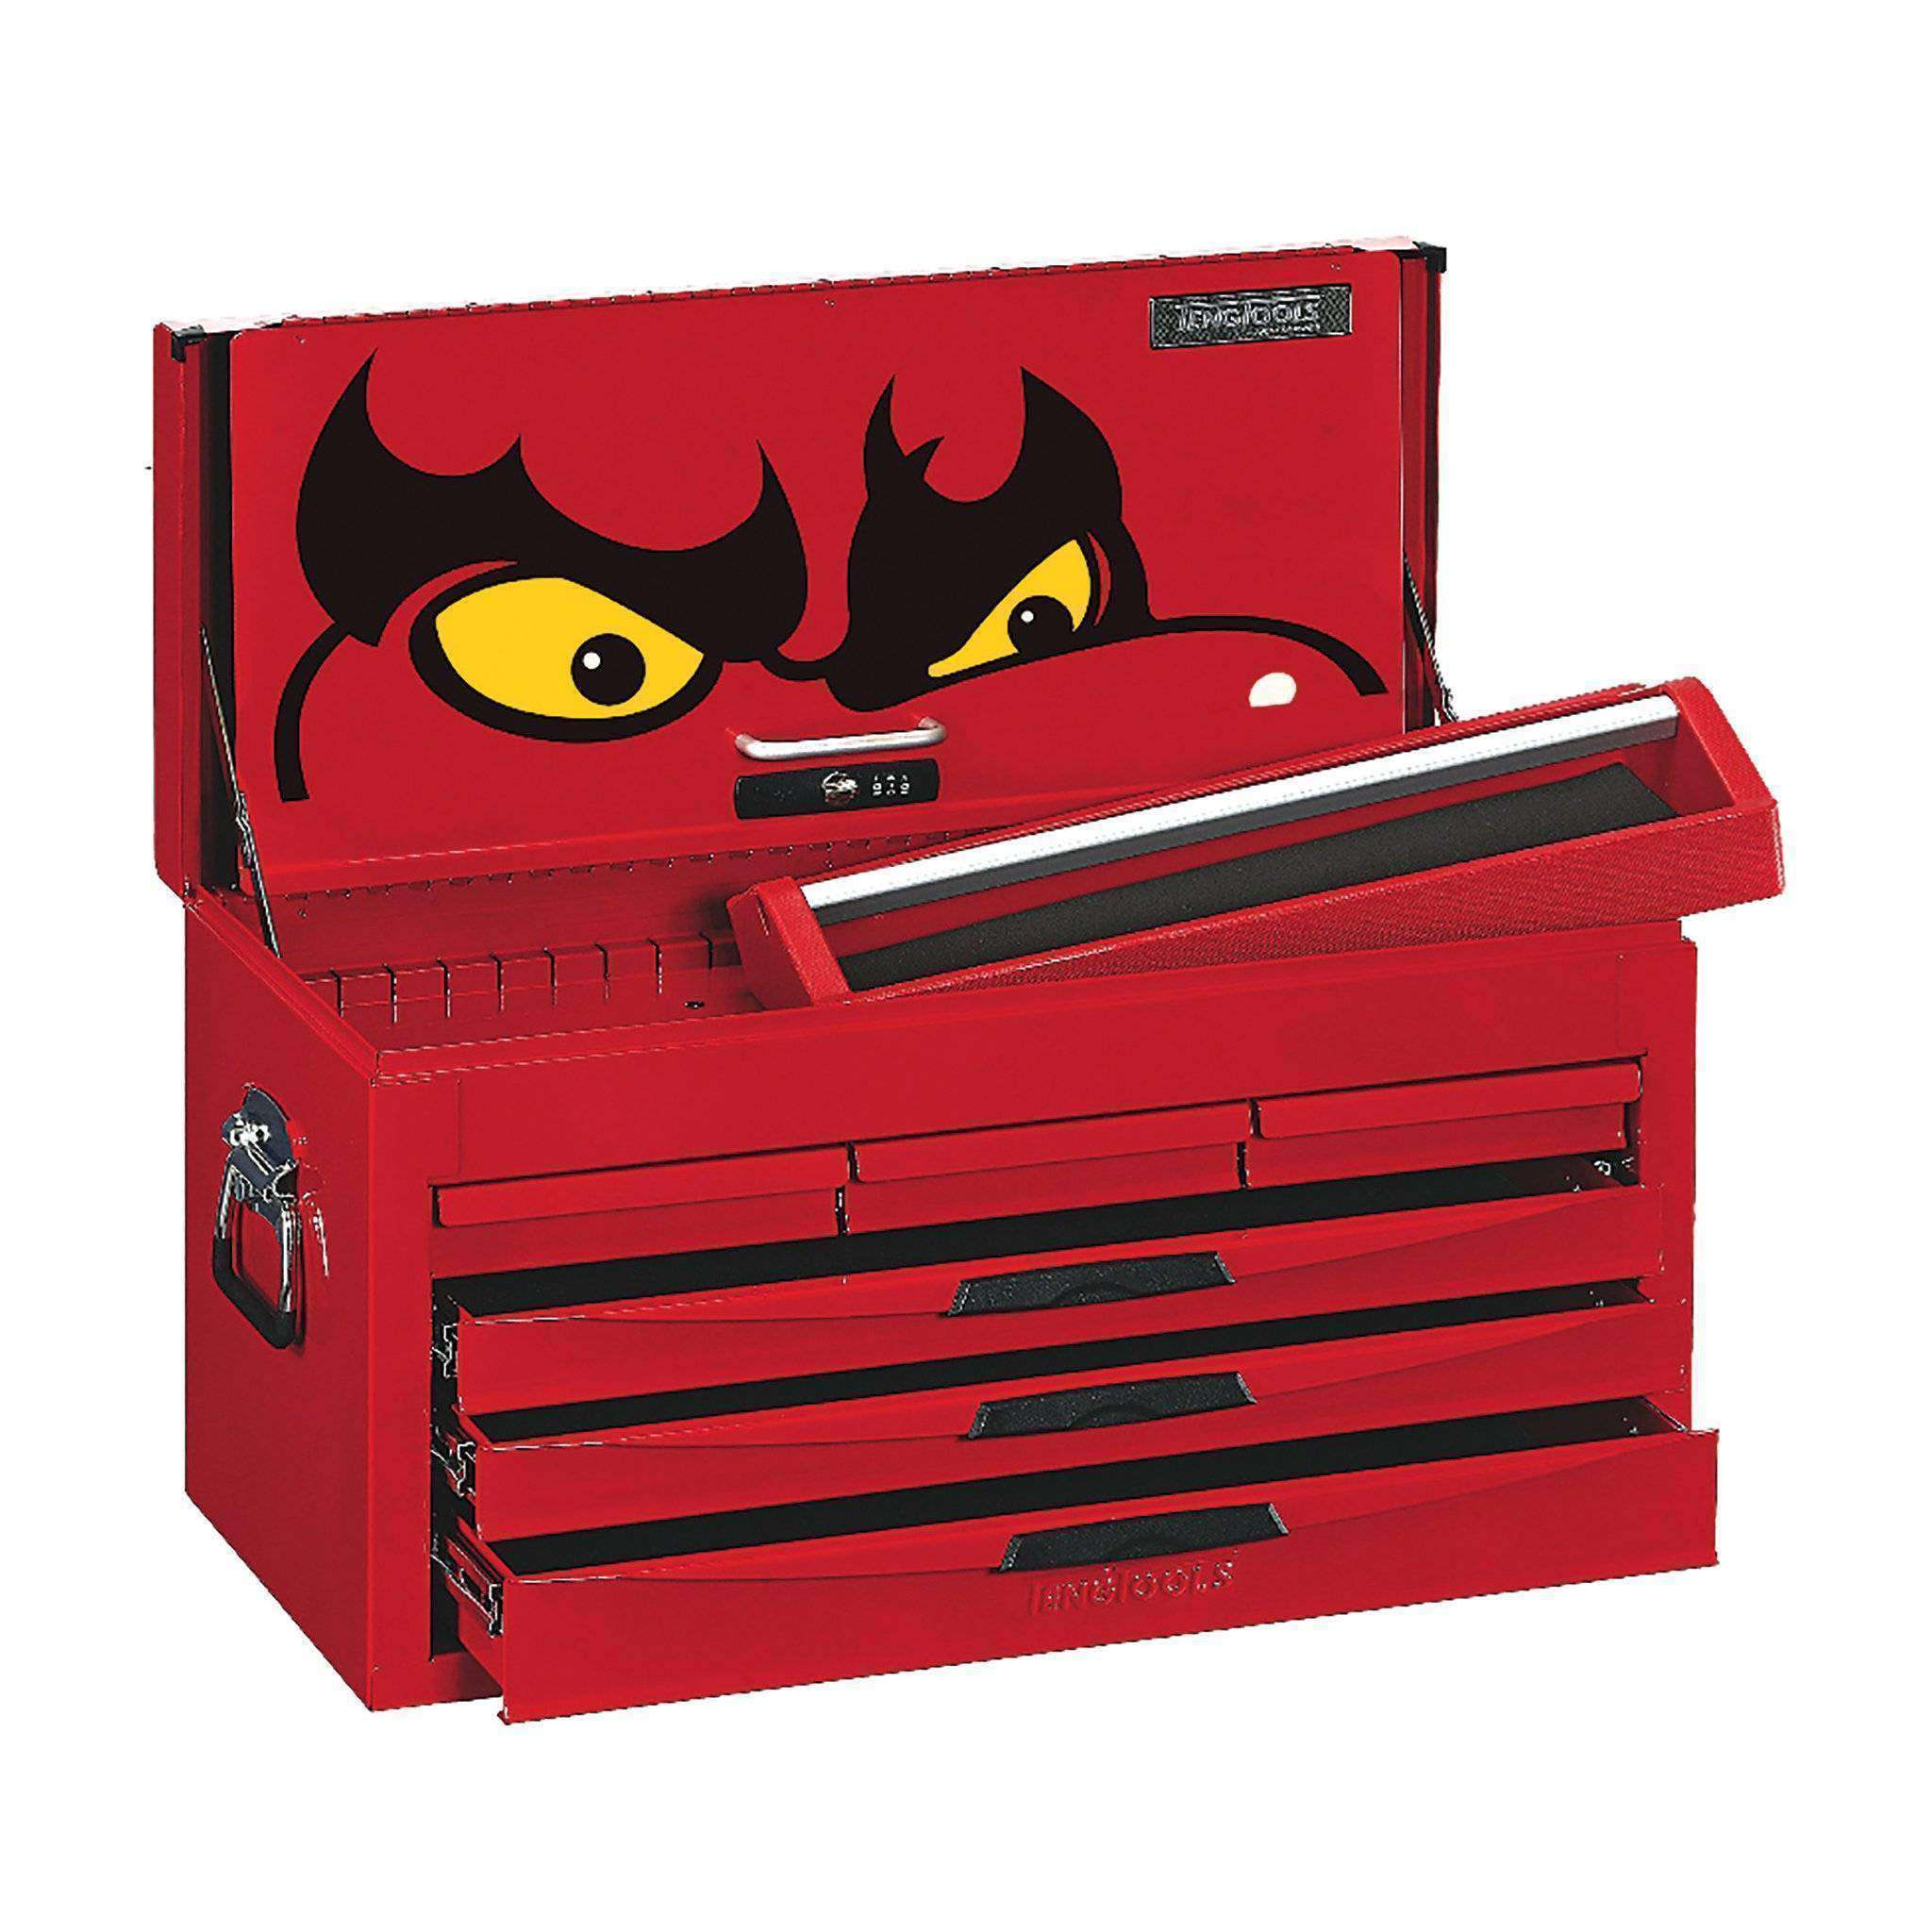 Teng Tools TC806NF - 6 Drawer 8 Series Top Box - Teng Tools USA